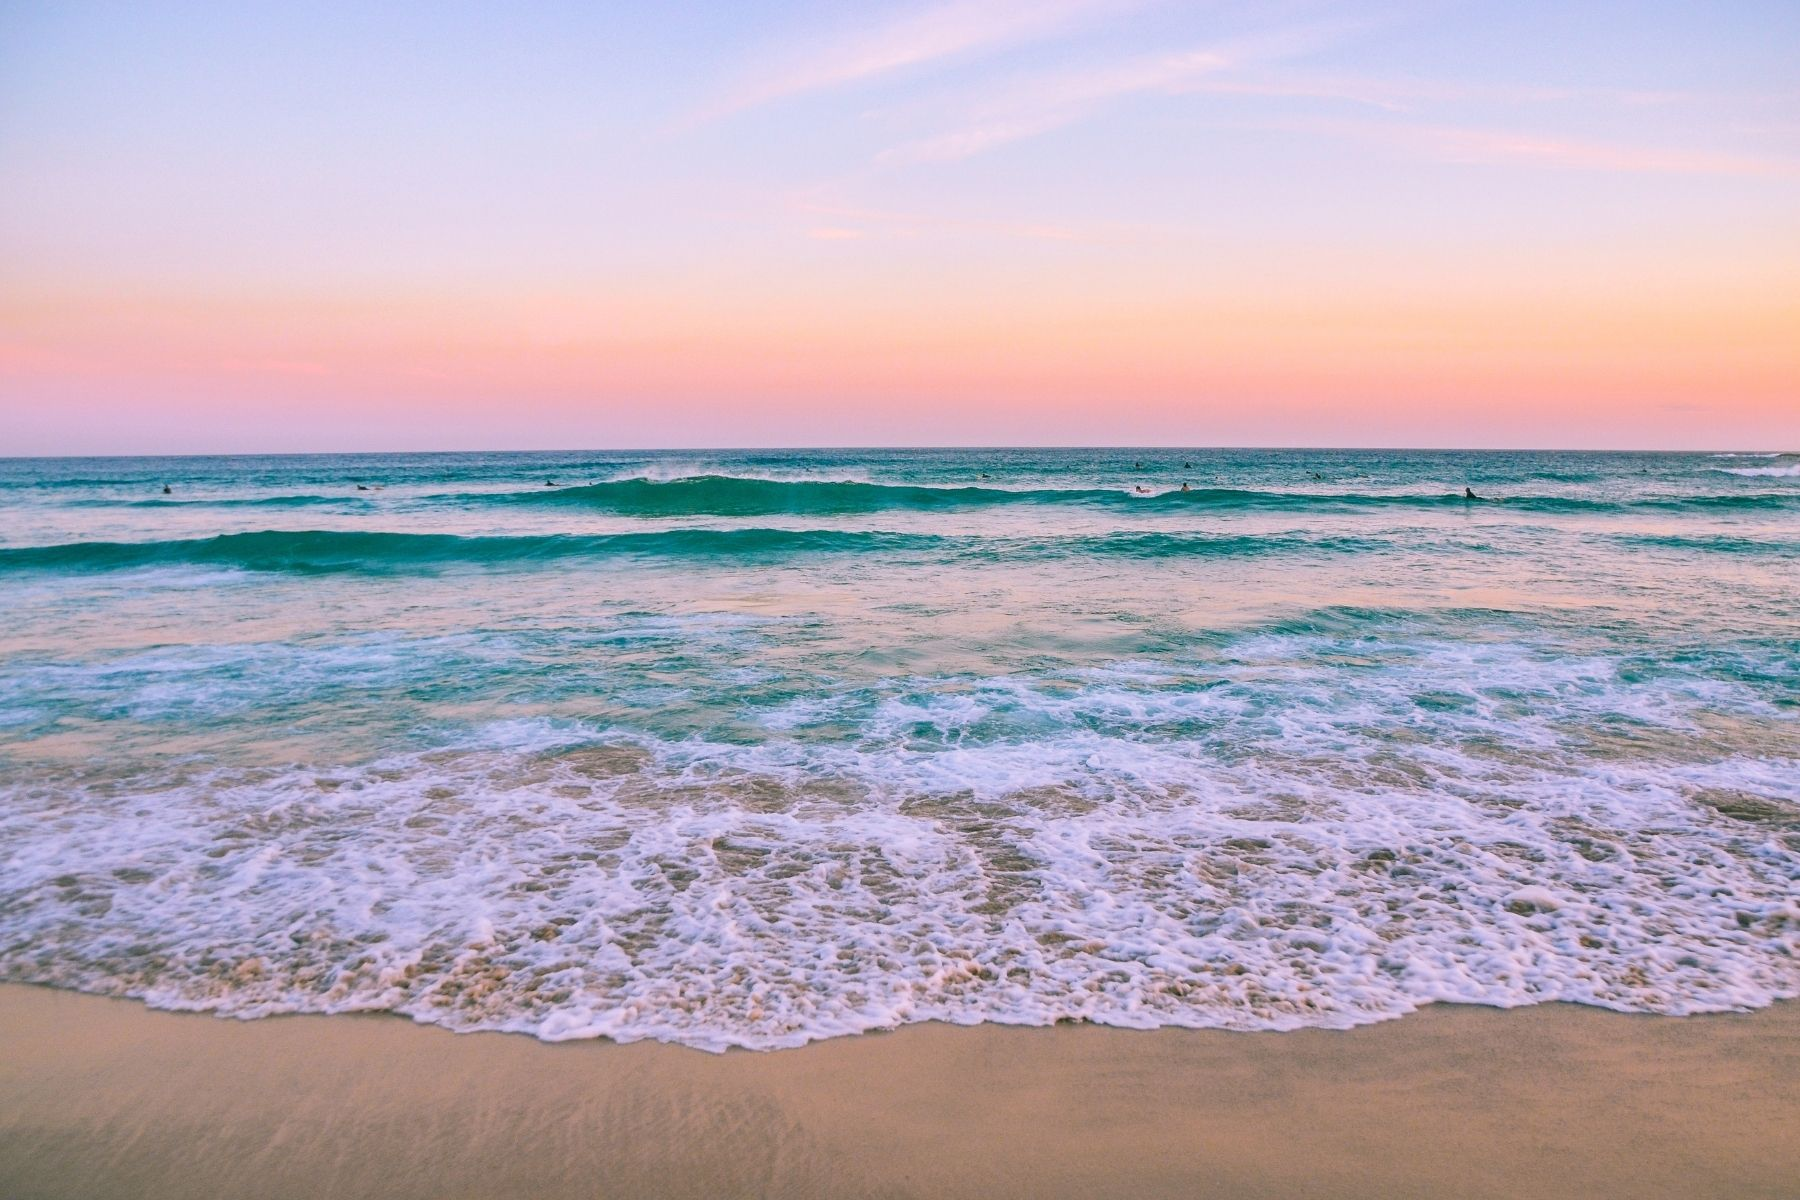 What Is the Best Destination for Beach Getaways From Atlanta?